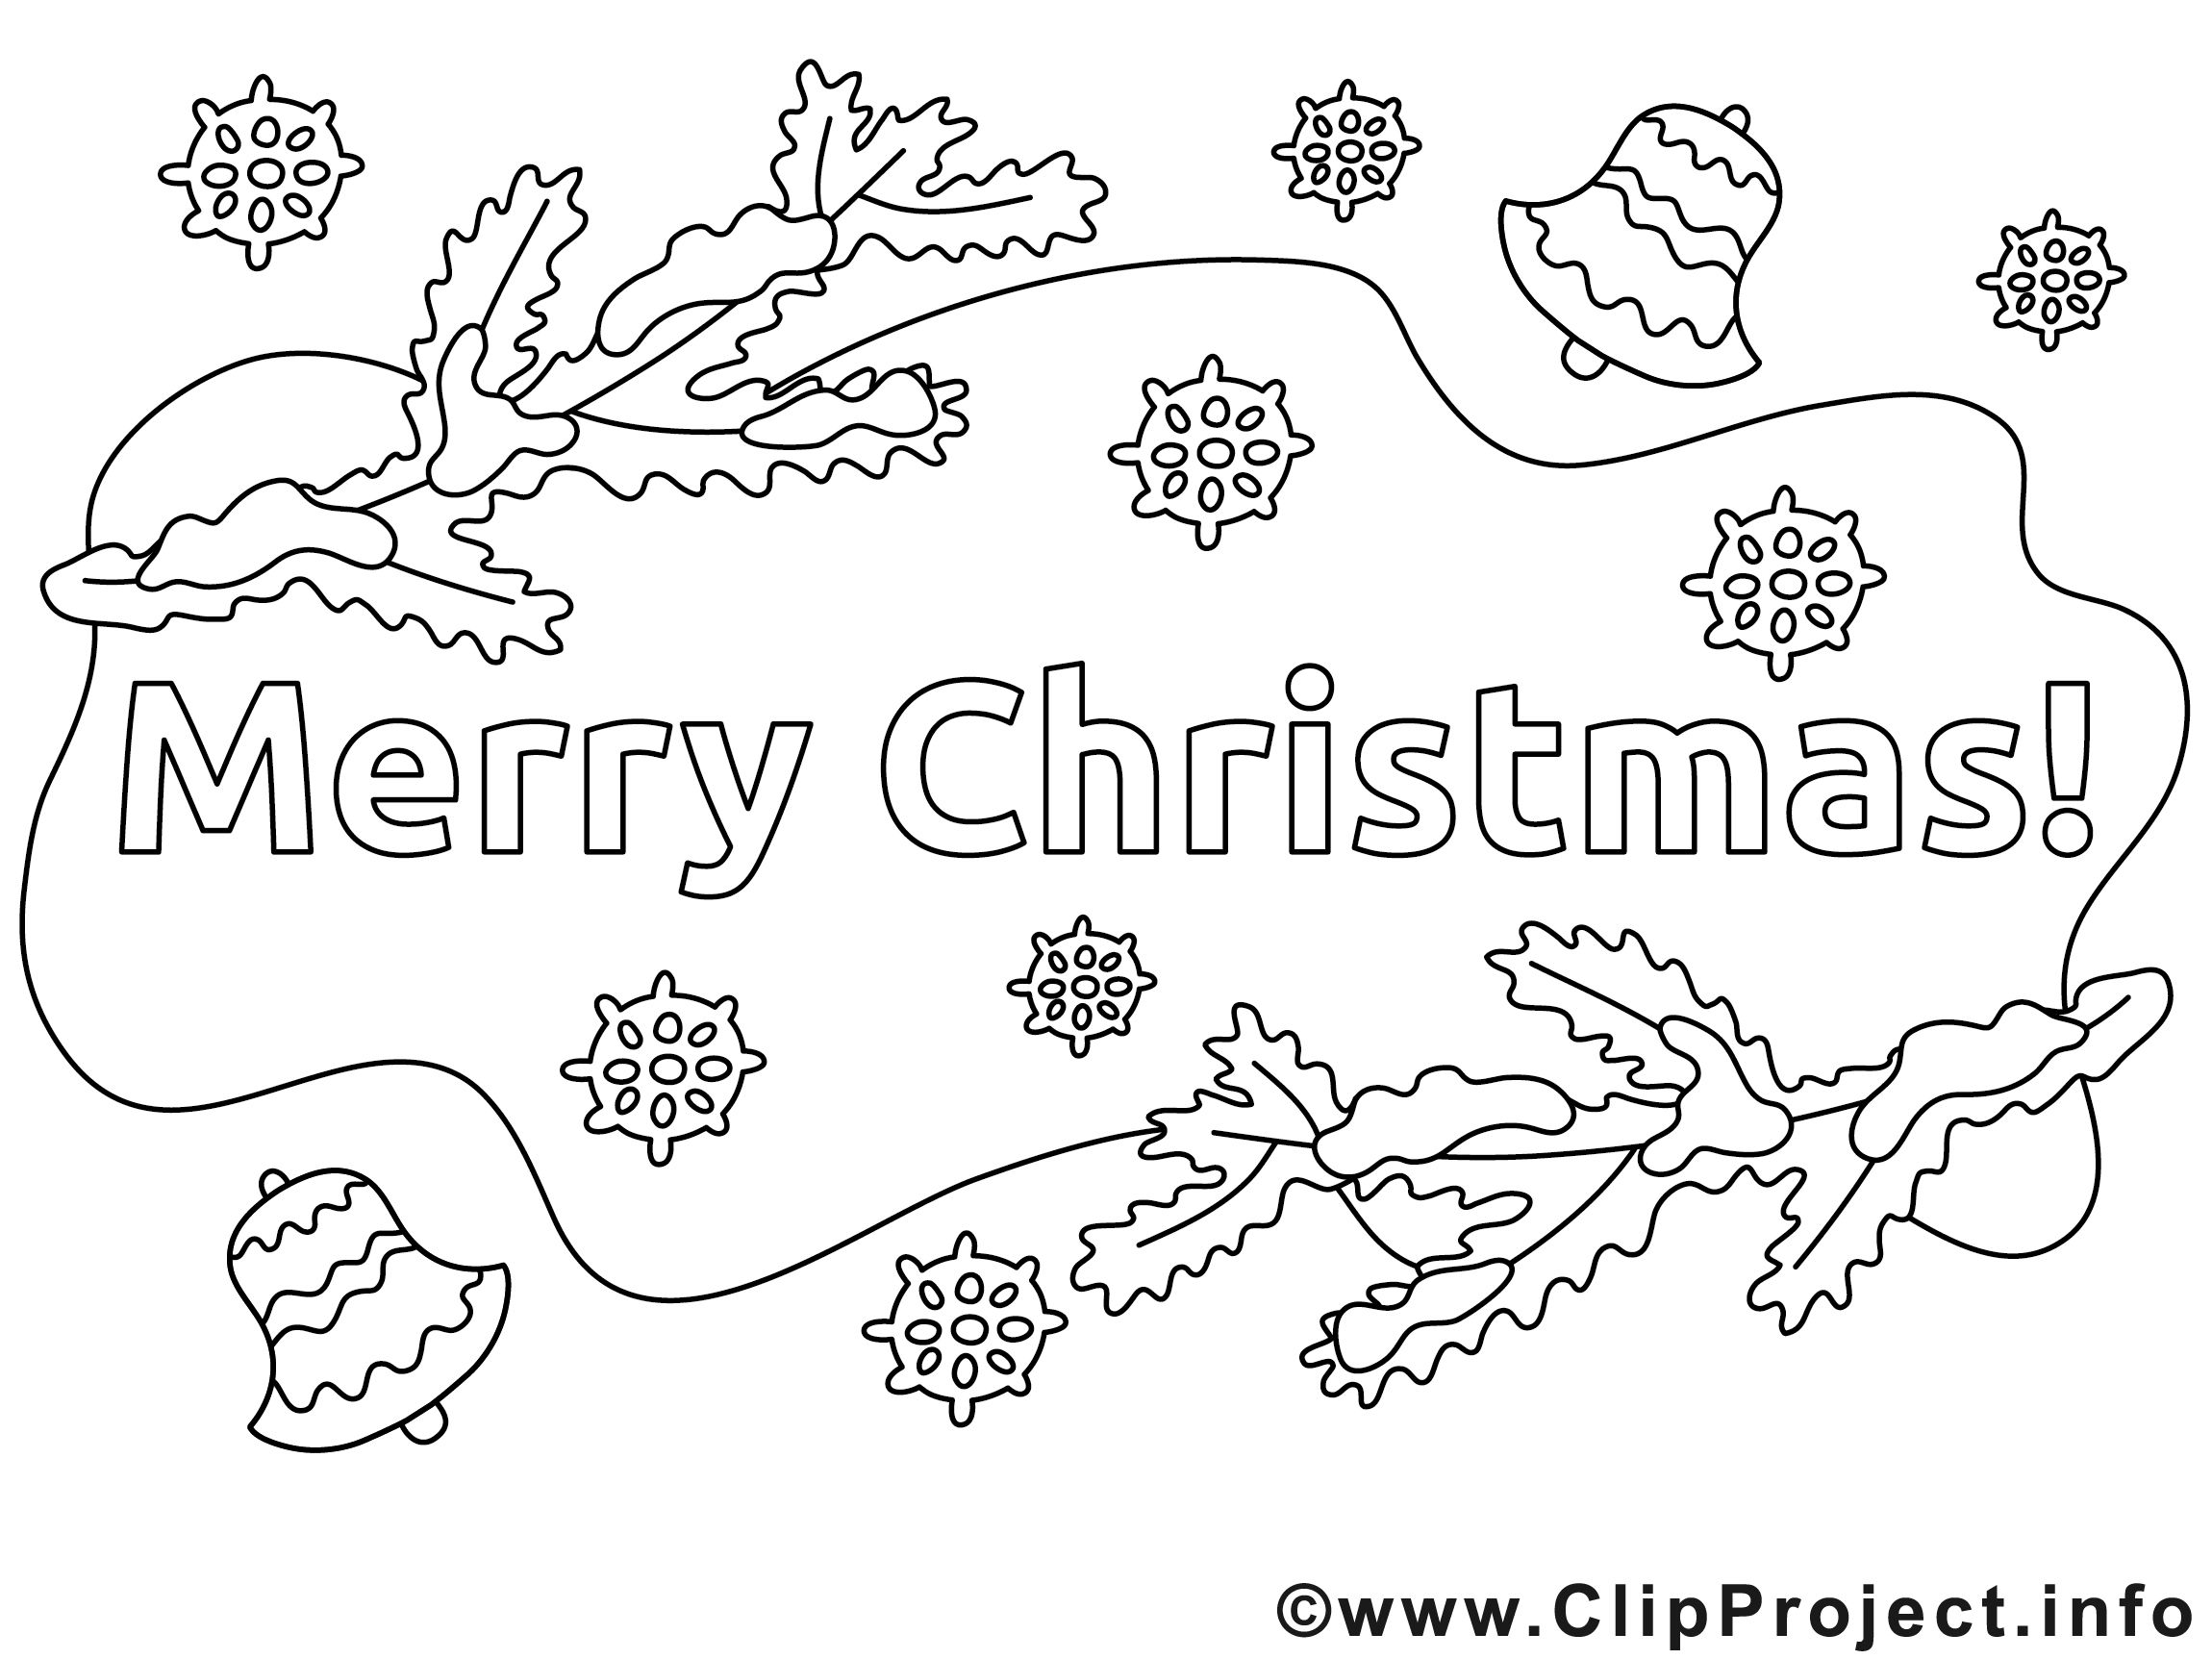 Lustige Malvorlagen Weihnachten Kostenlos Http Www Ausmalbilder Co Lustige Malvorlagen We Thanksgiving Coloring Pages Coloring Pages For Kids Coloring Pages